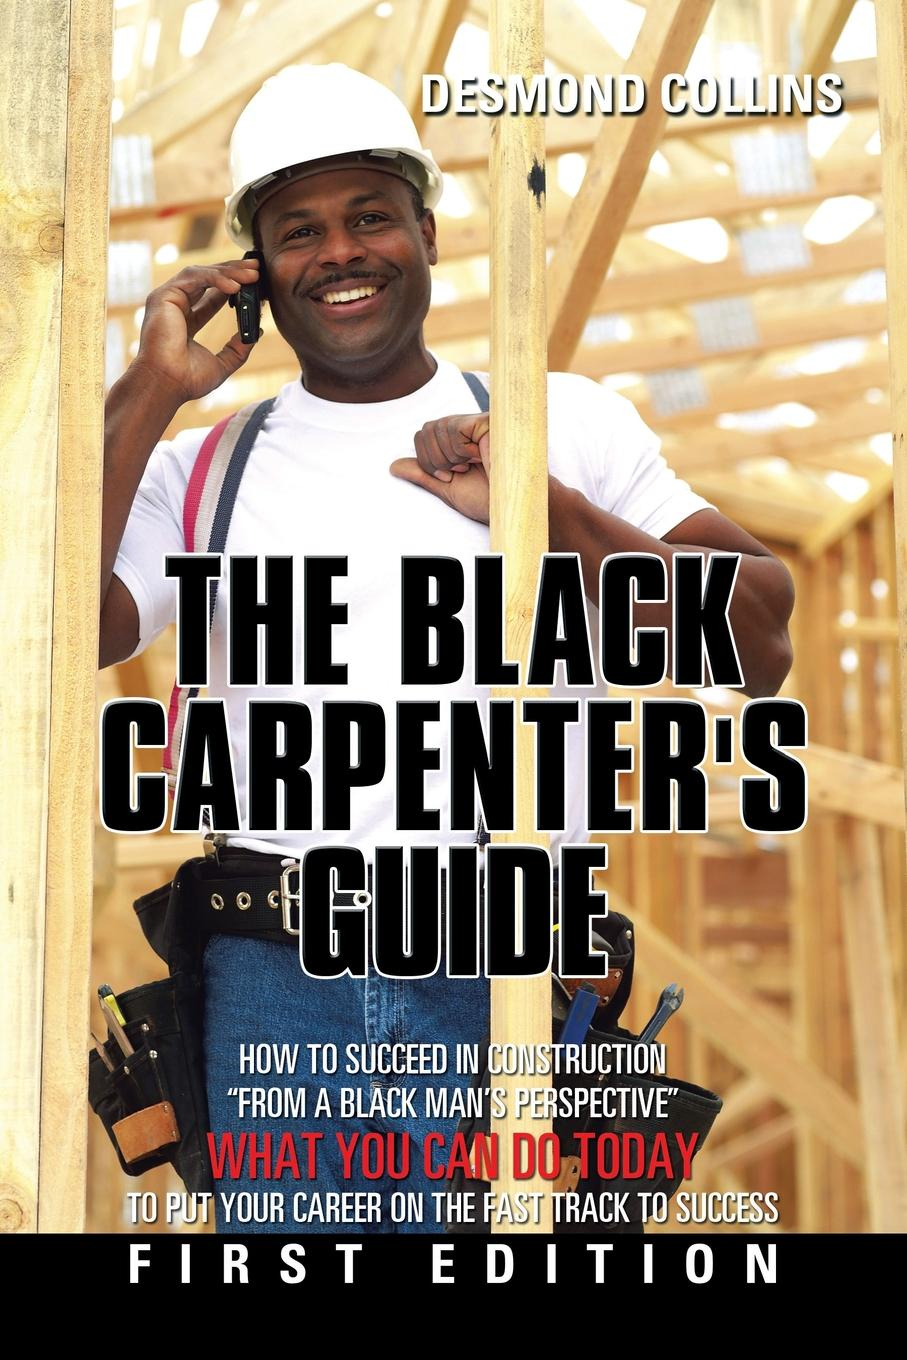 Desmond Collins The Black Carpenter's Guide. How to succeed in construction From a black man's perspective WHAT YOU CAN DO TODAY to put your career on the fast track to success jan yager phd jan yager tthe fast track guide to speaking in public